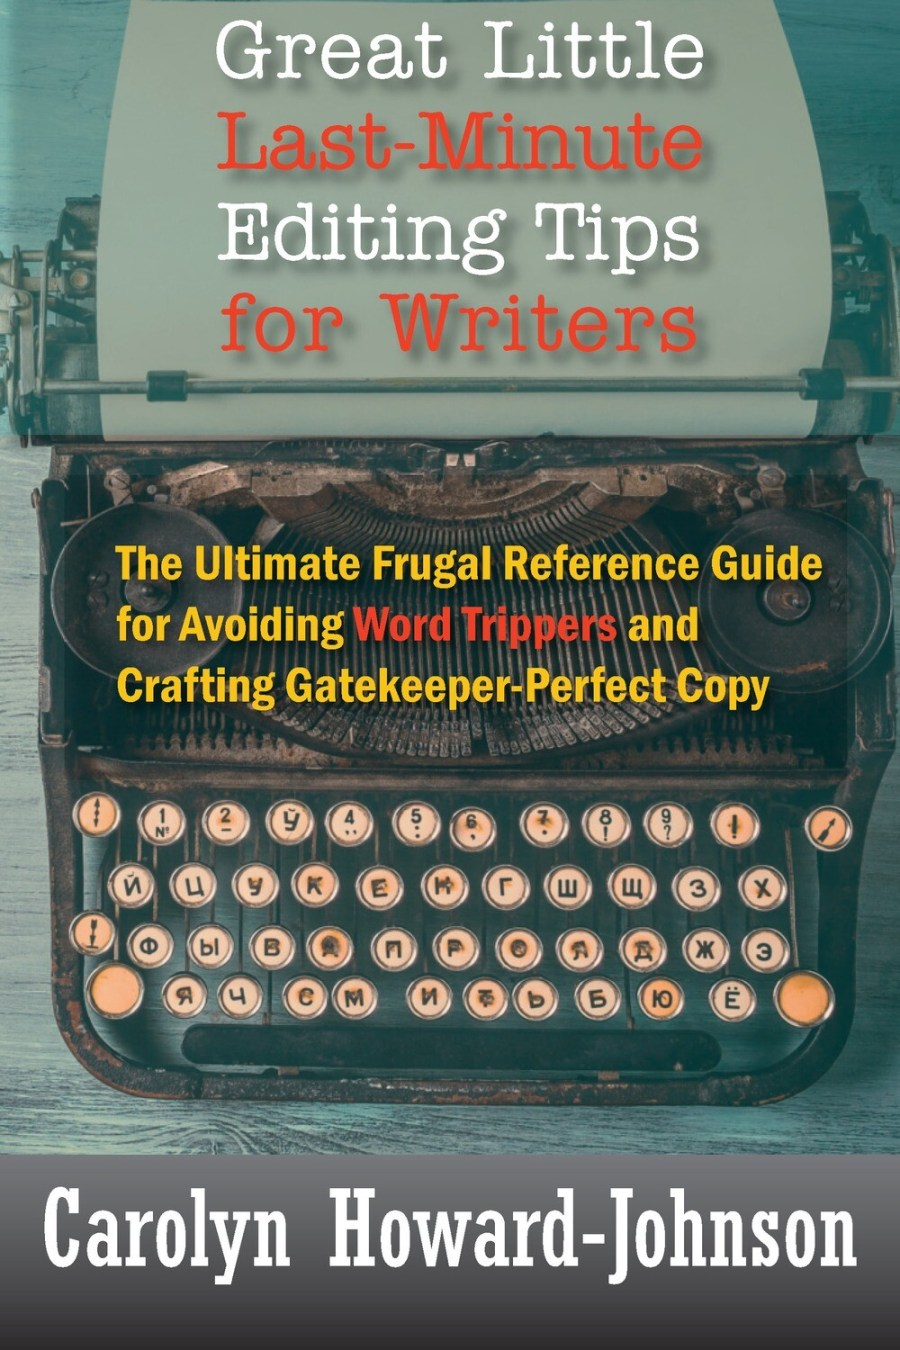 Great Little Last-Minute Editing Tips for Writers